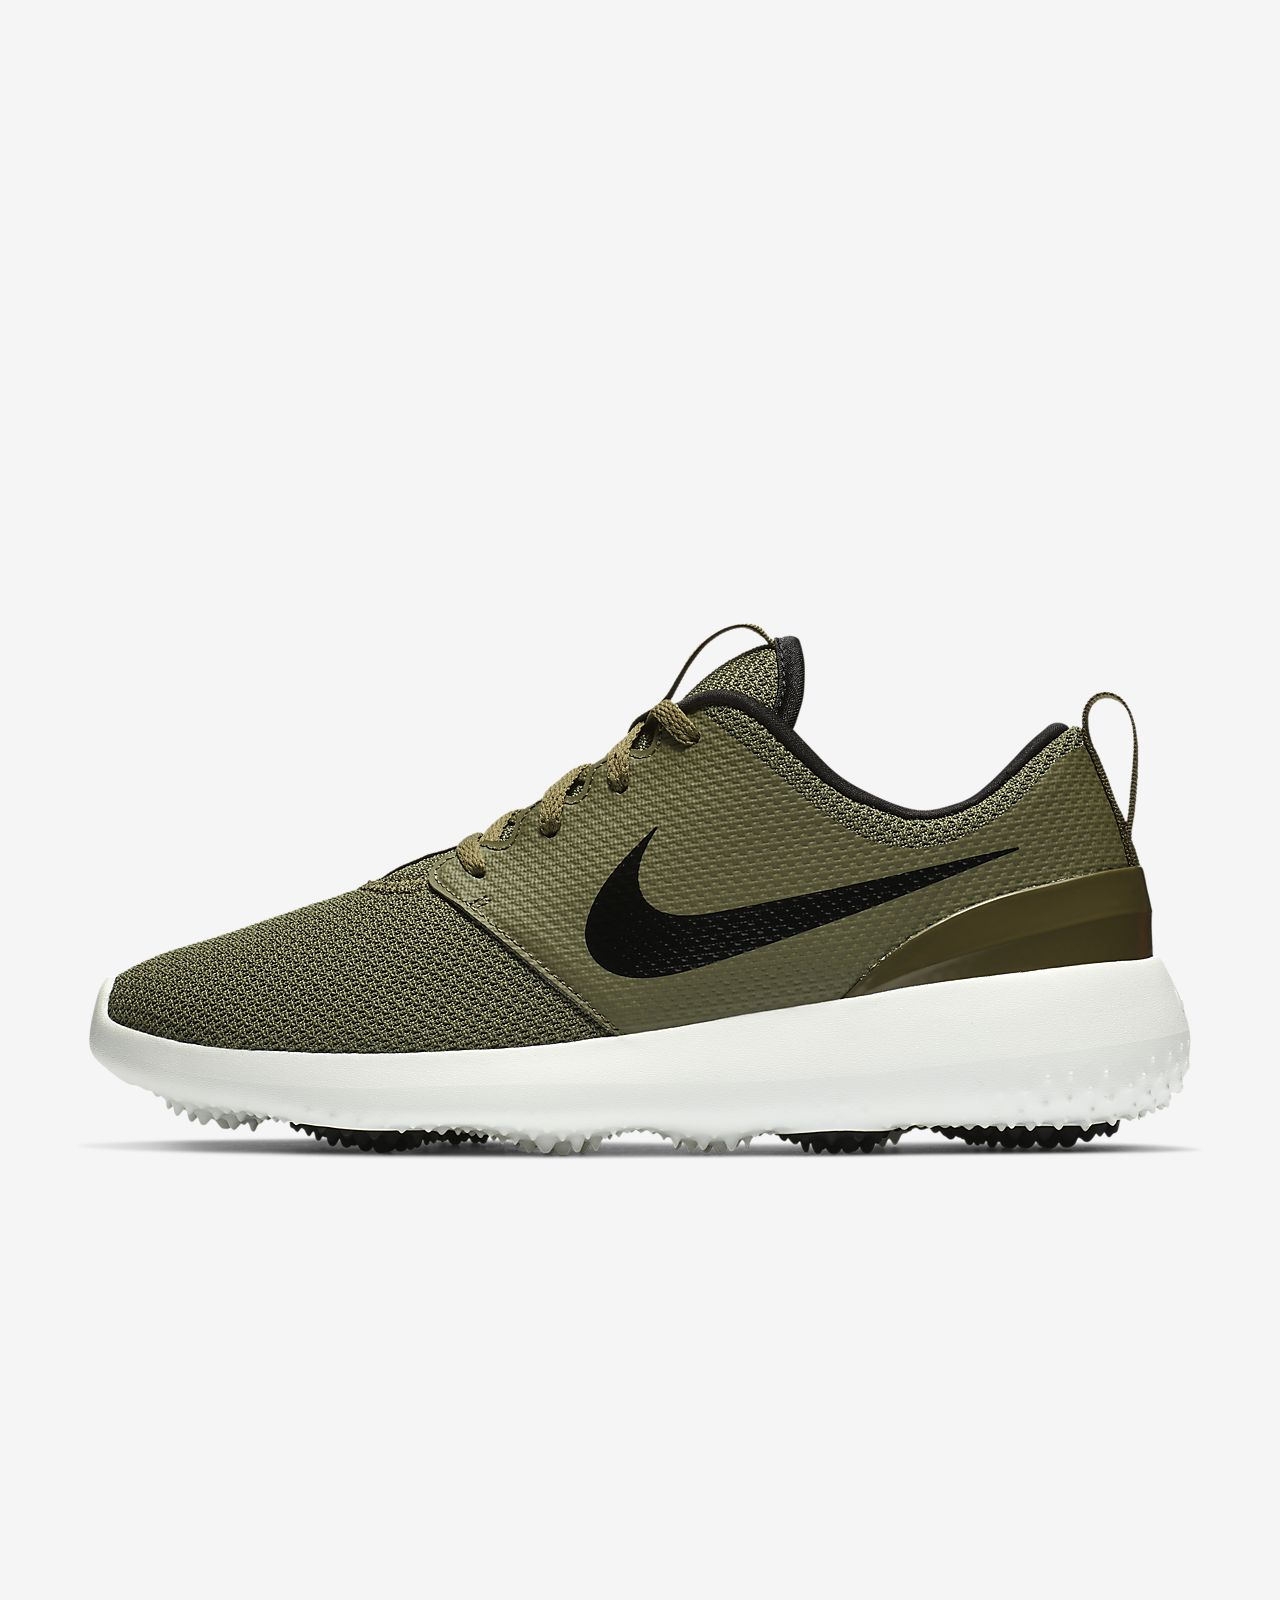 f1e82163c78 Nike Roshe G Men s Golf Shoe. Nike.com GB